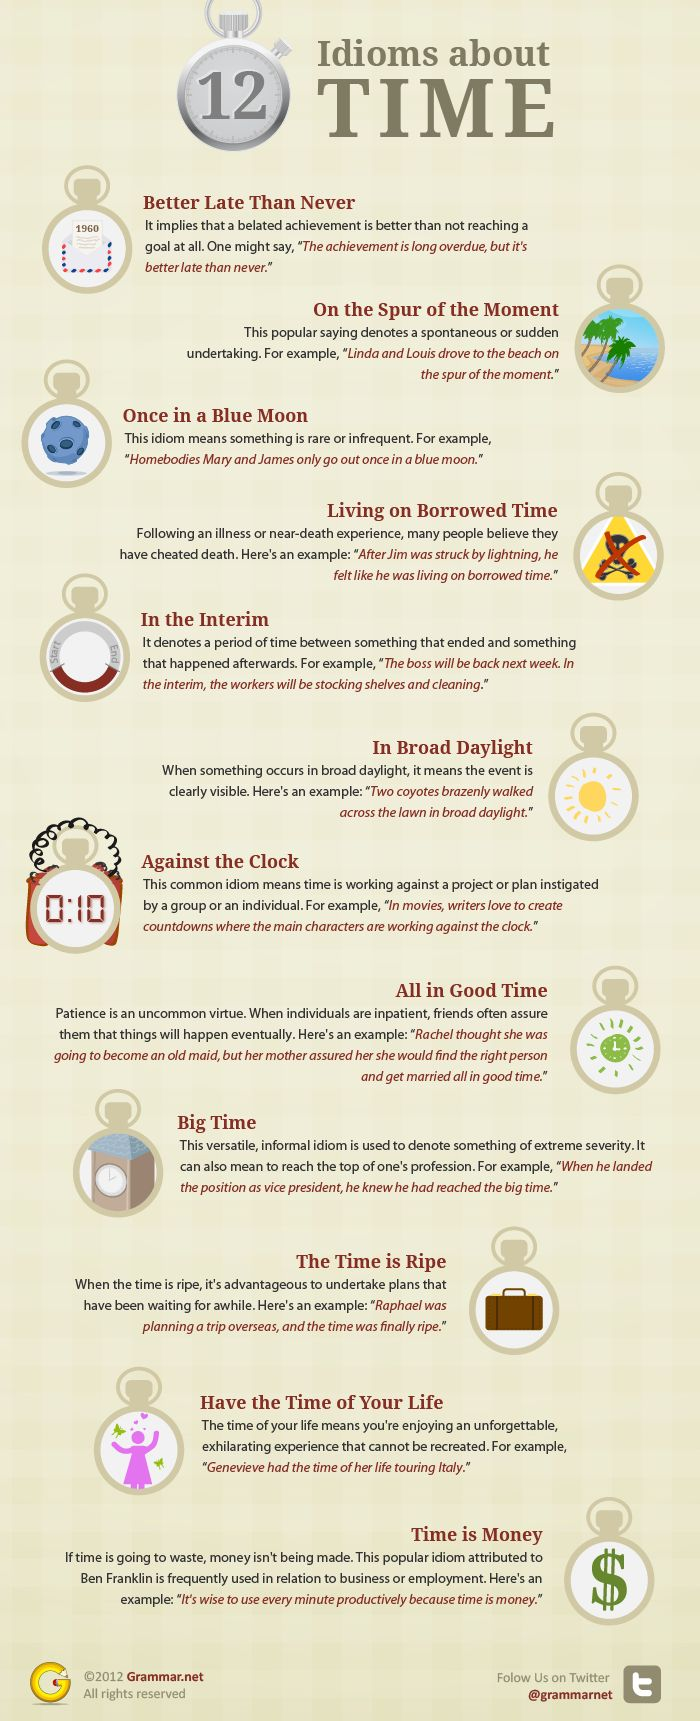 English idioms - 12 idioms about time